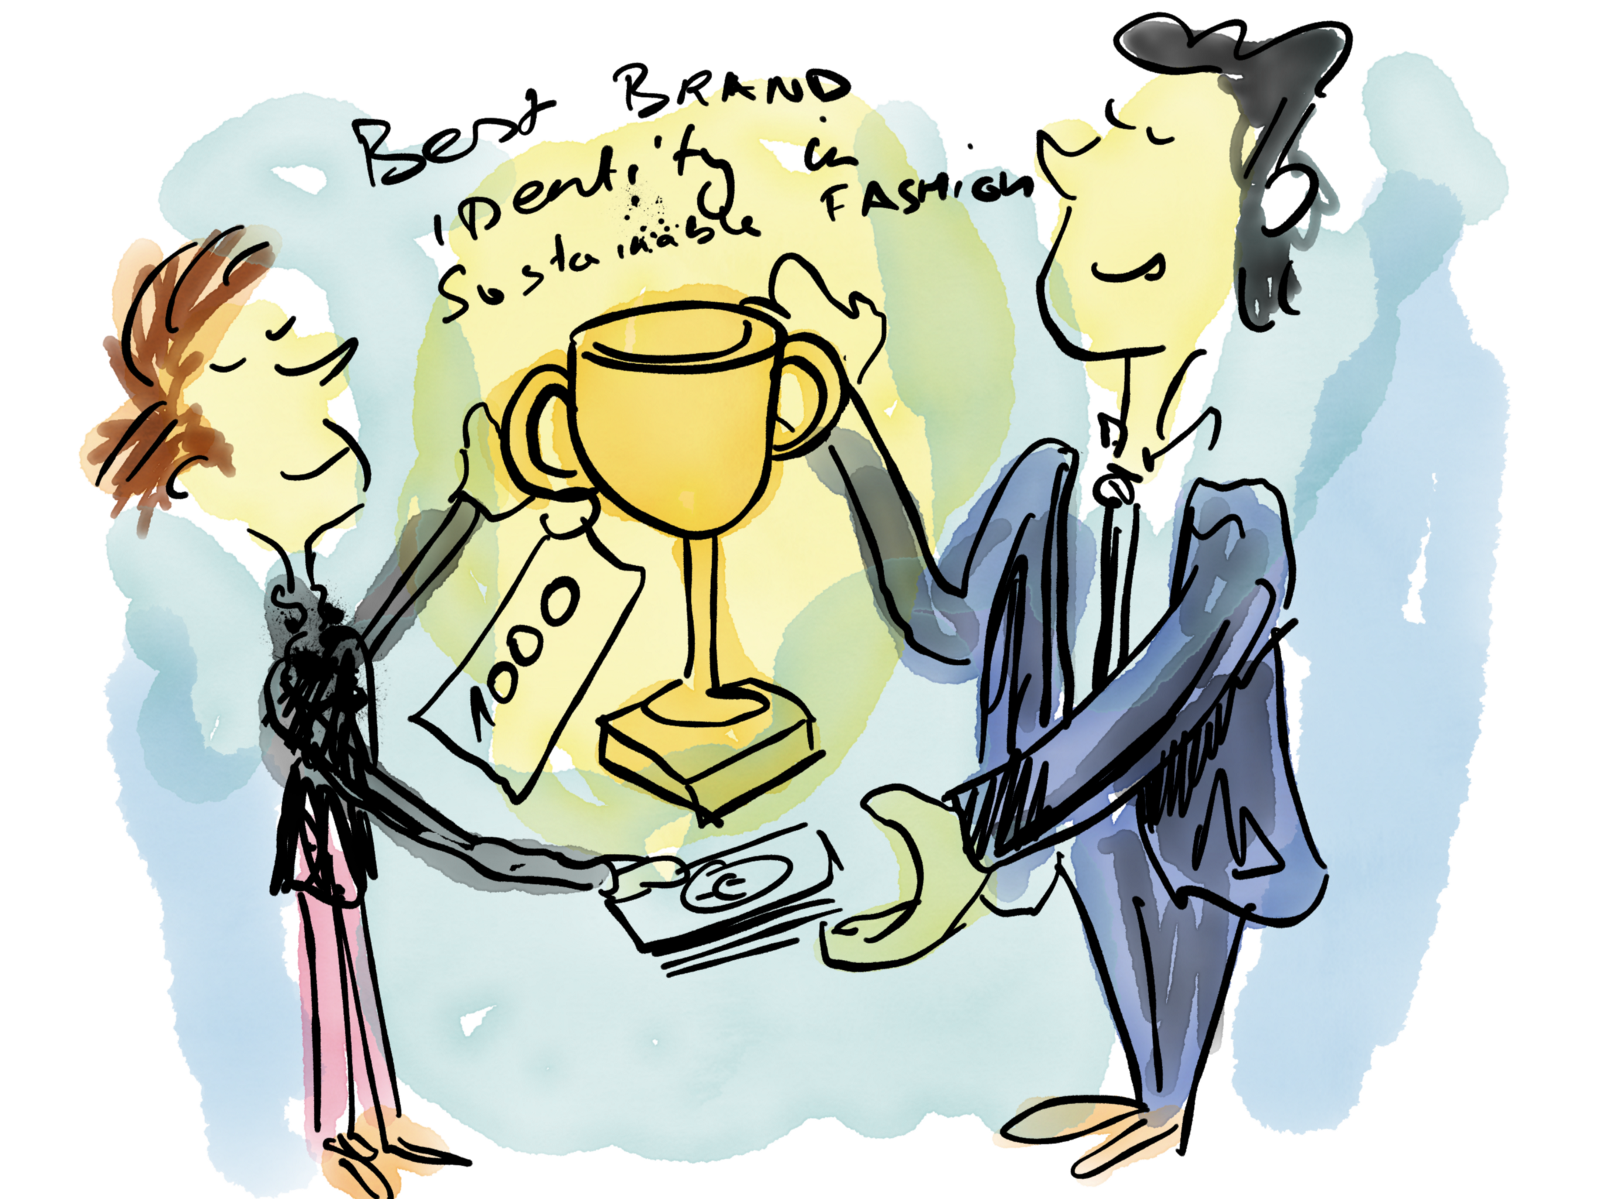 Awards clipart award winning. Why are a scam